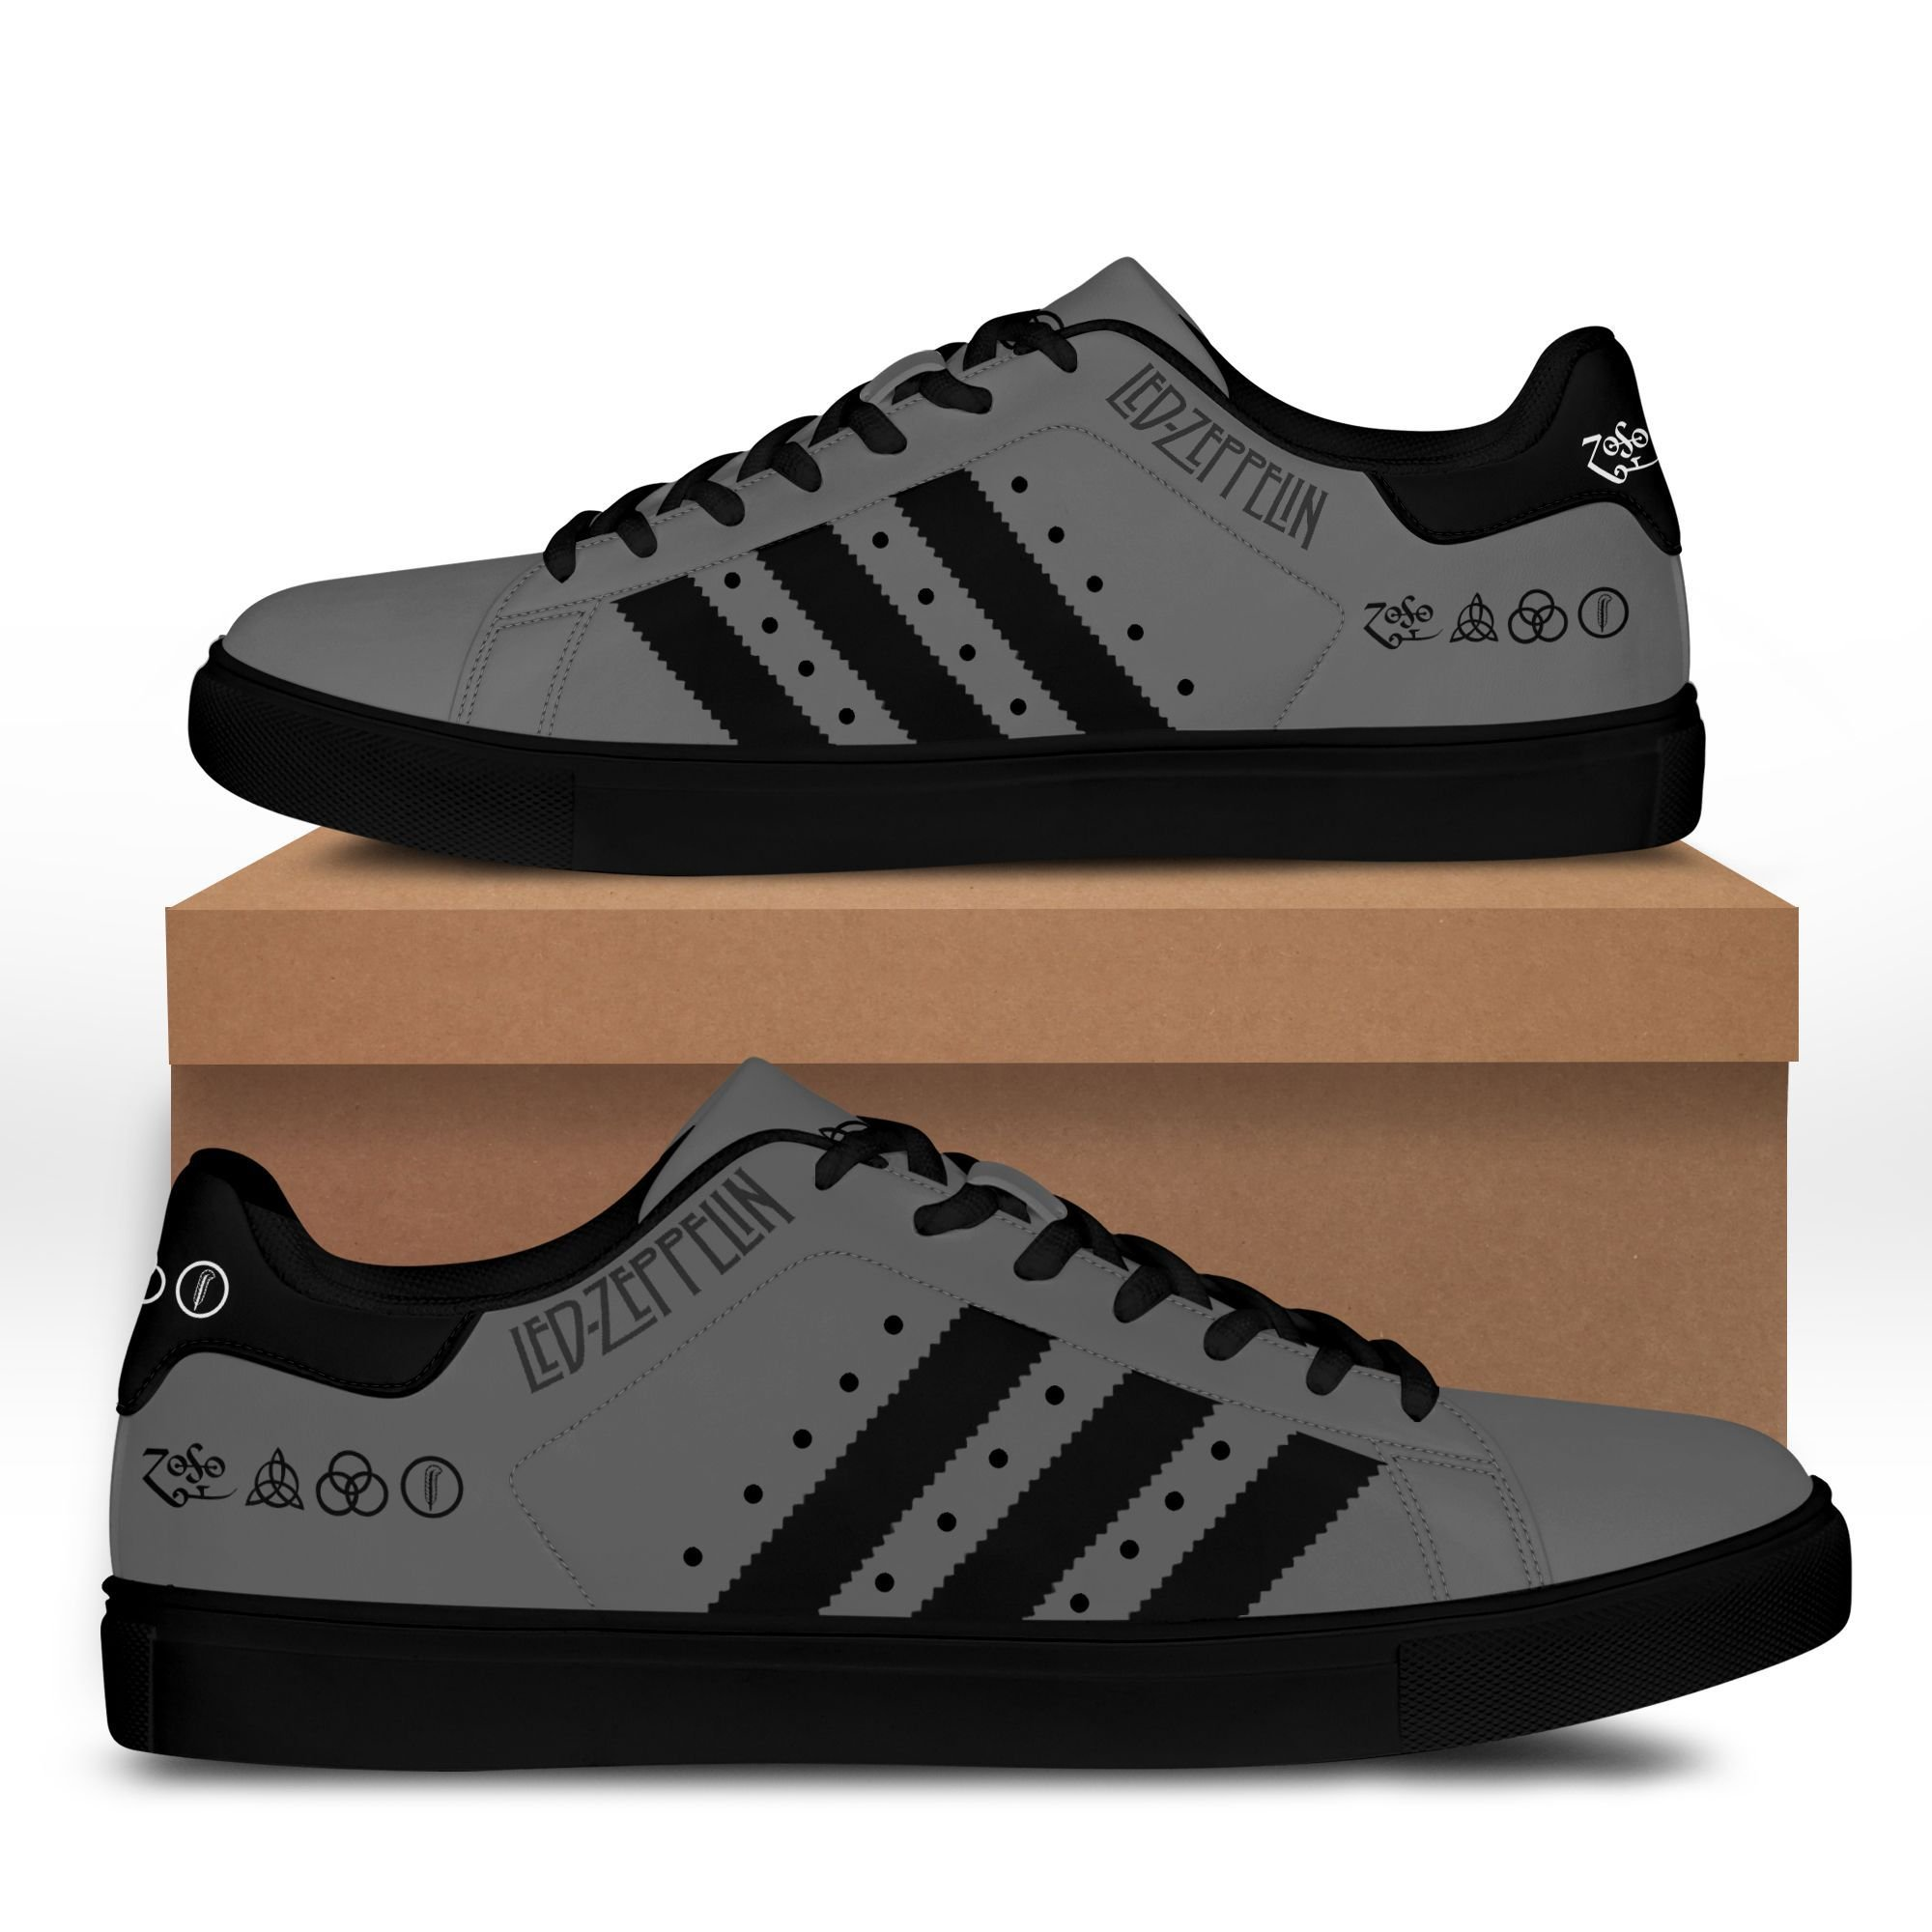 Led zeppelin grey Stan Smith Shoes